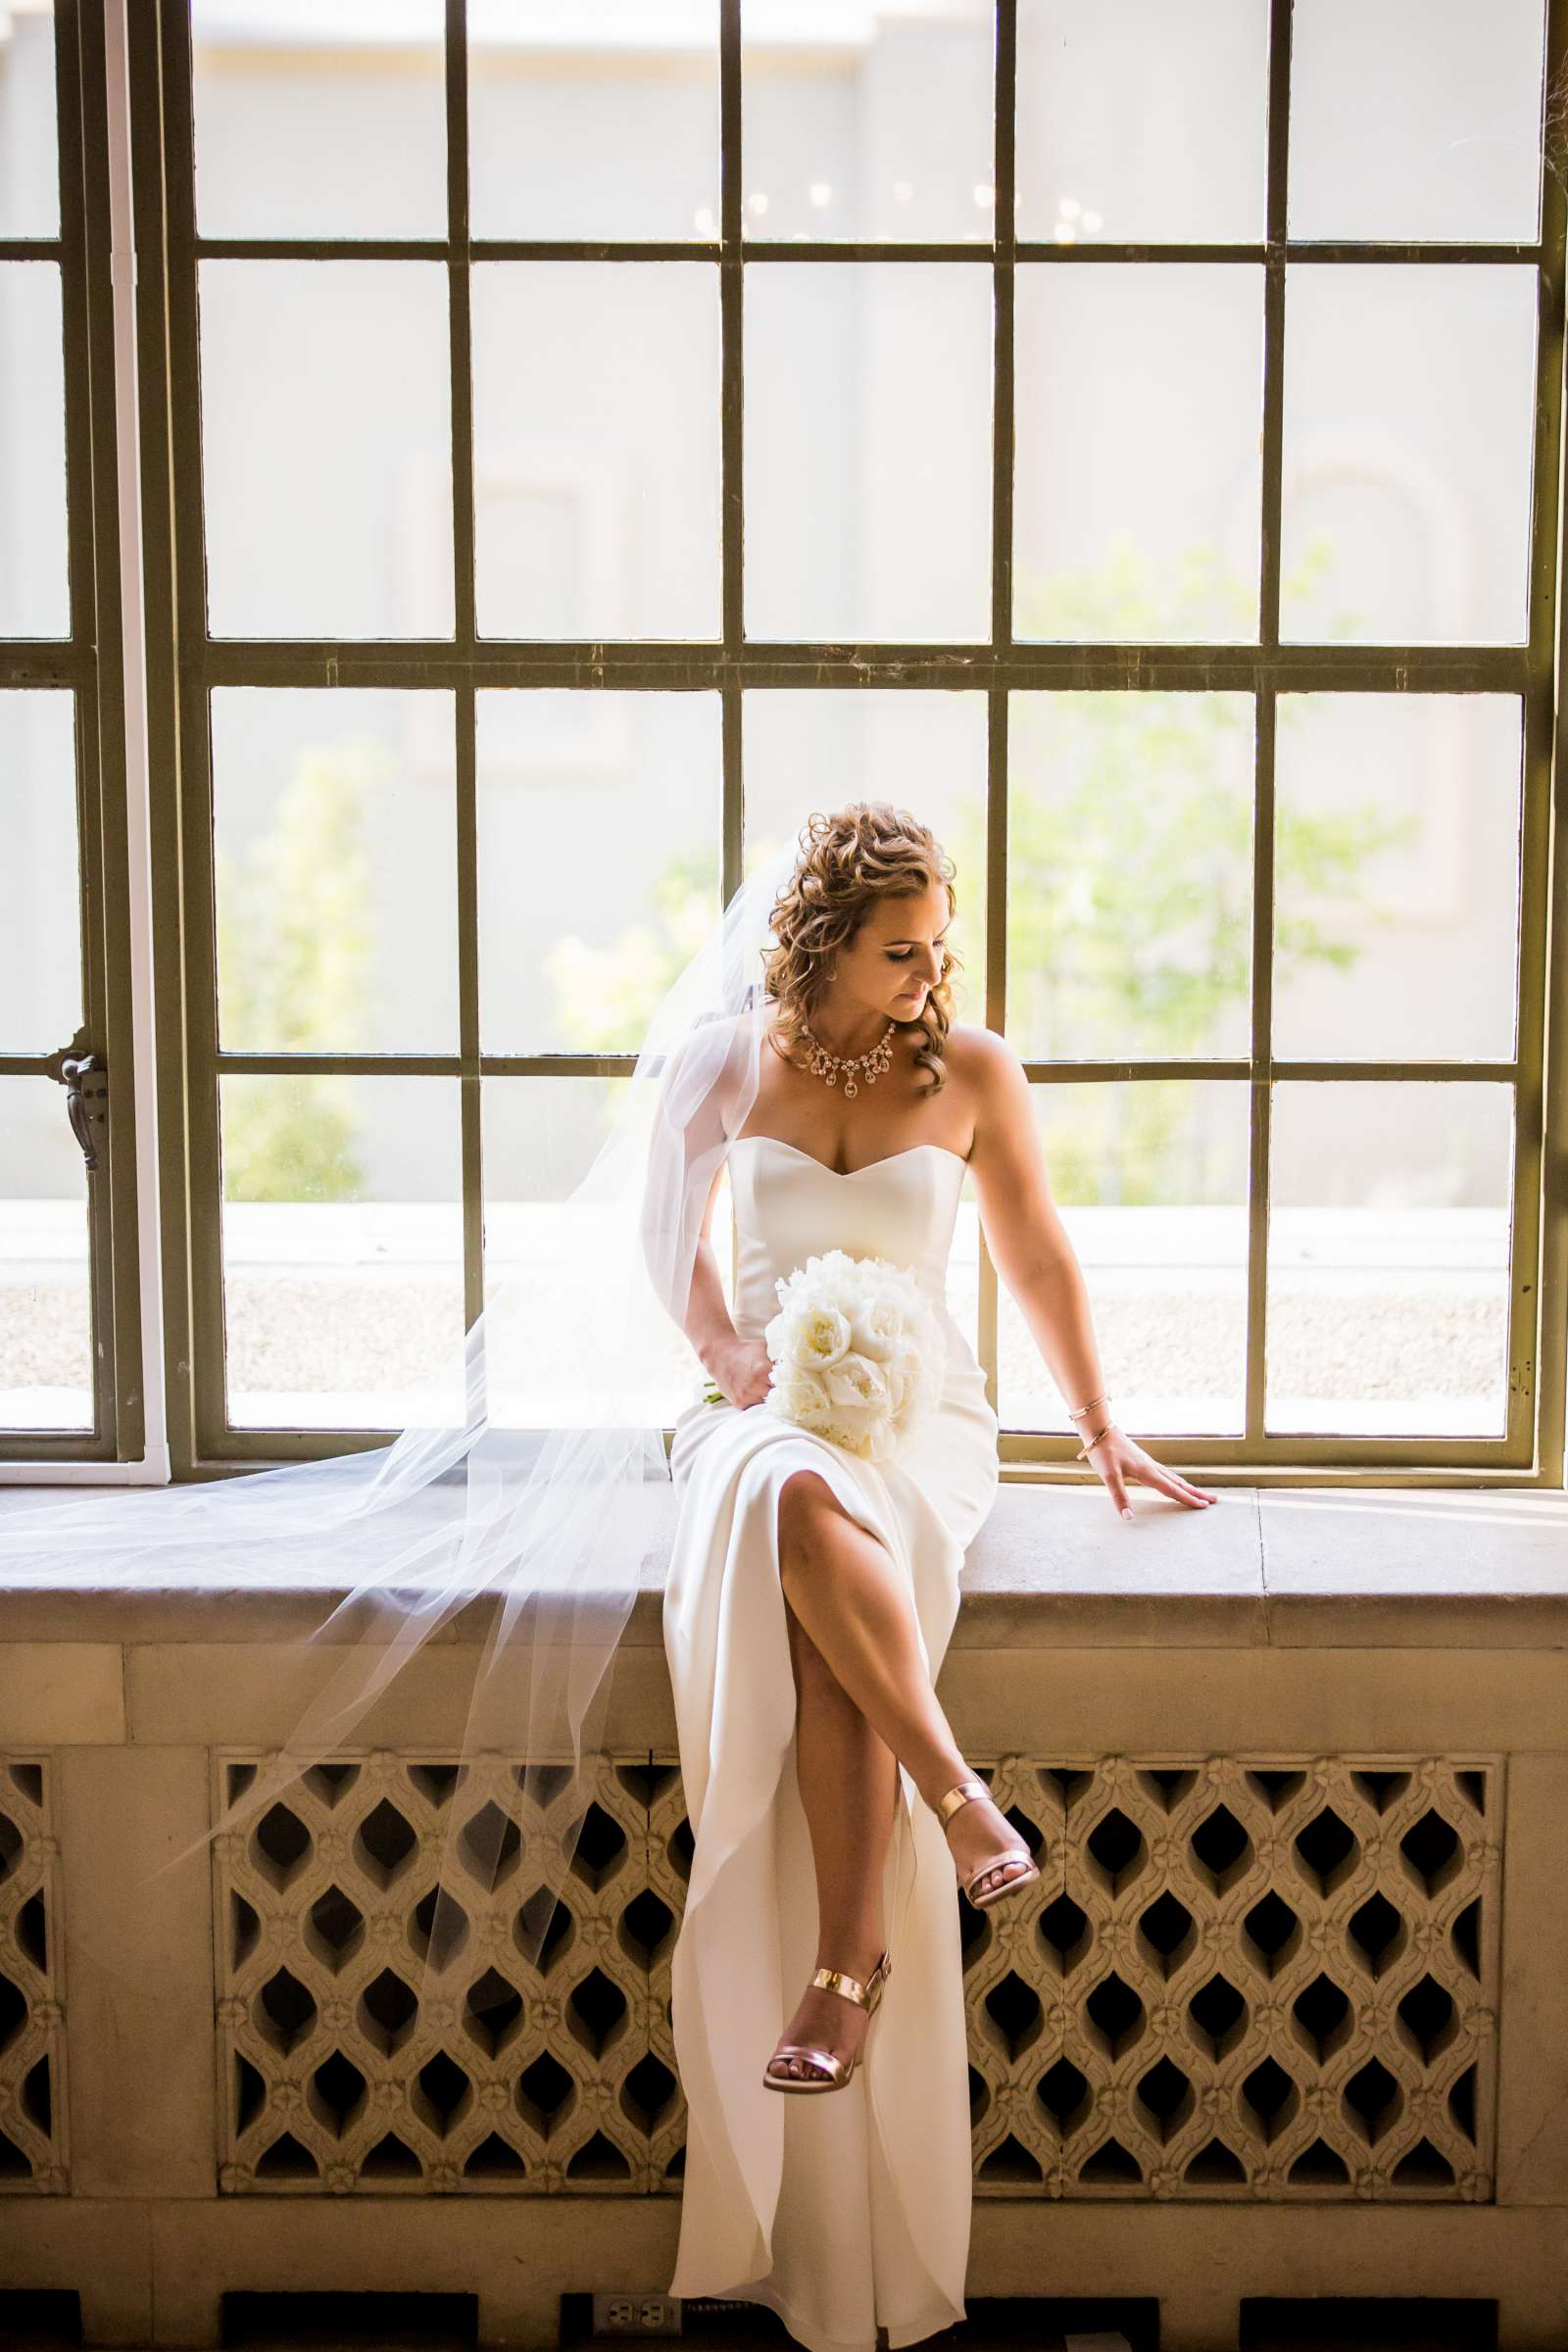 San Diego Museum of Art Wedding coordinated by First Comes Love Weddings & Events, Ruthie and Larry Wedding Photo #236823 by True Photography